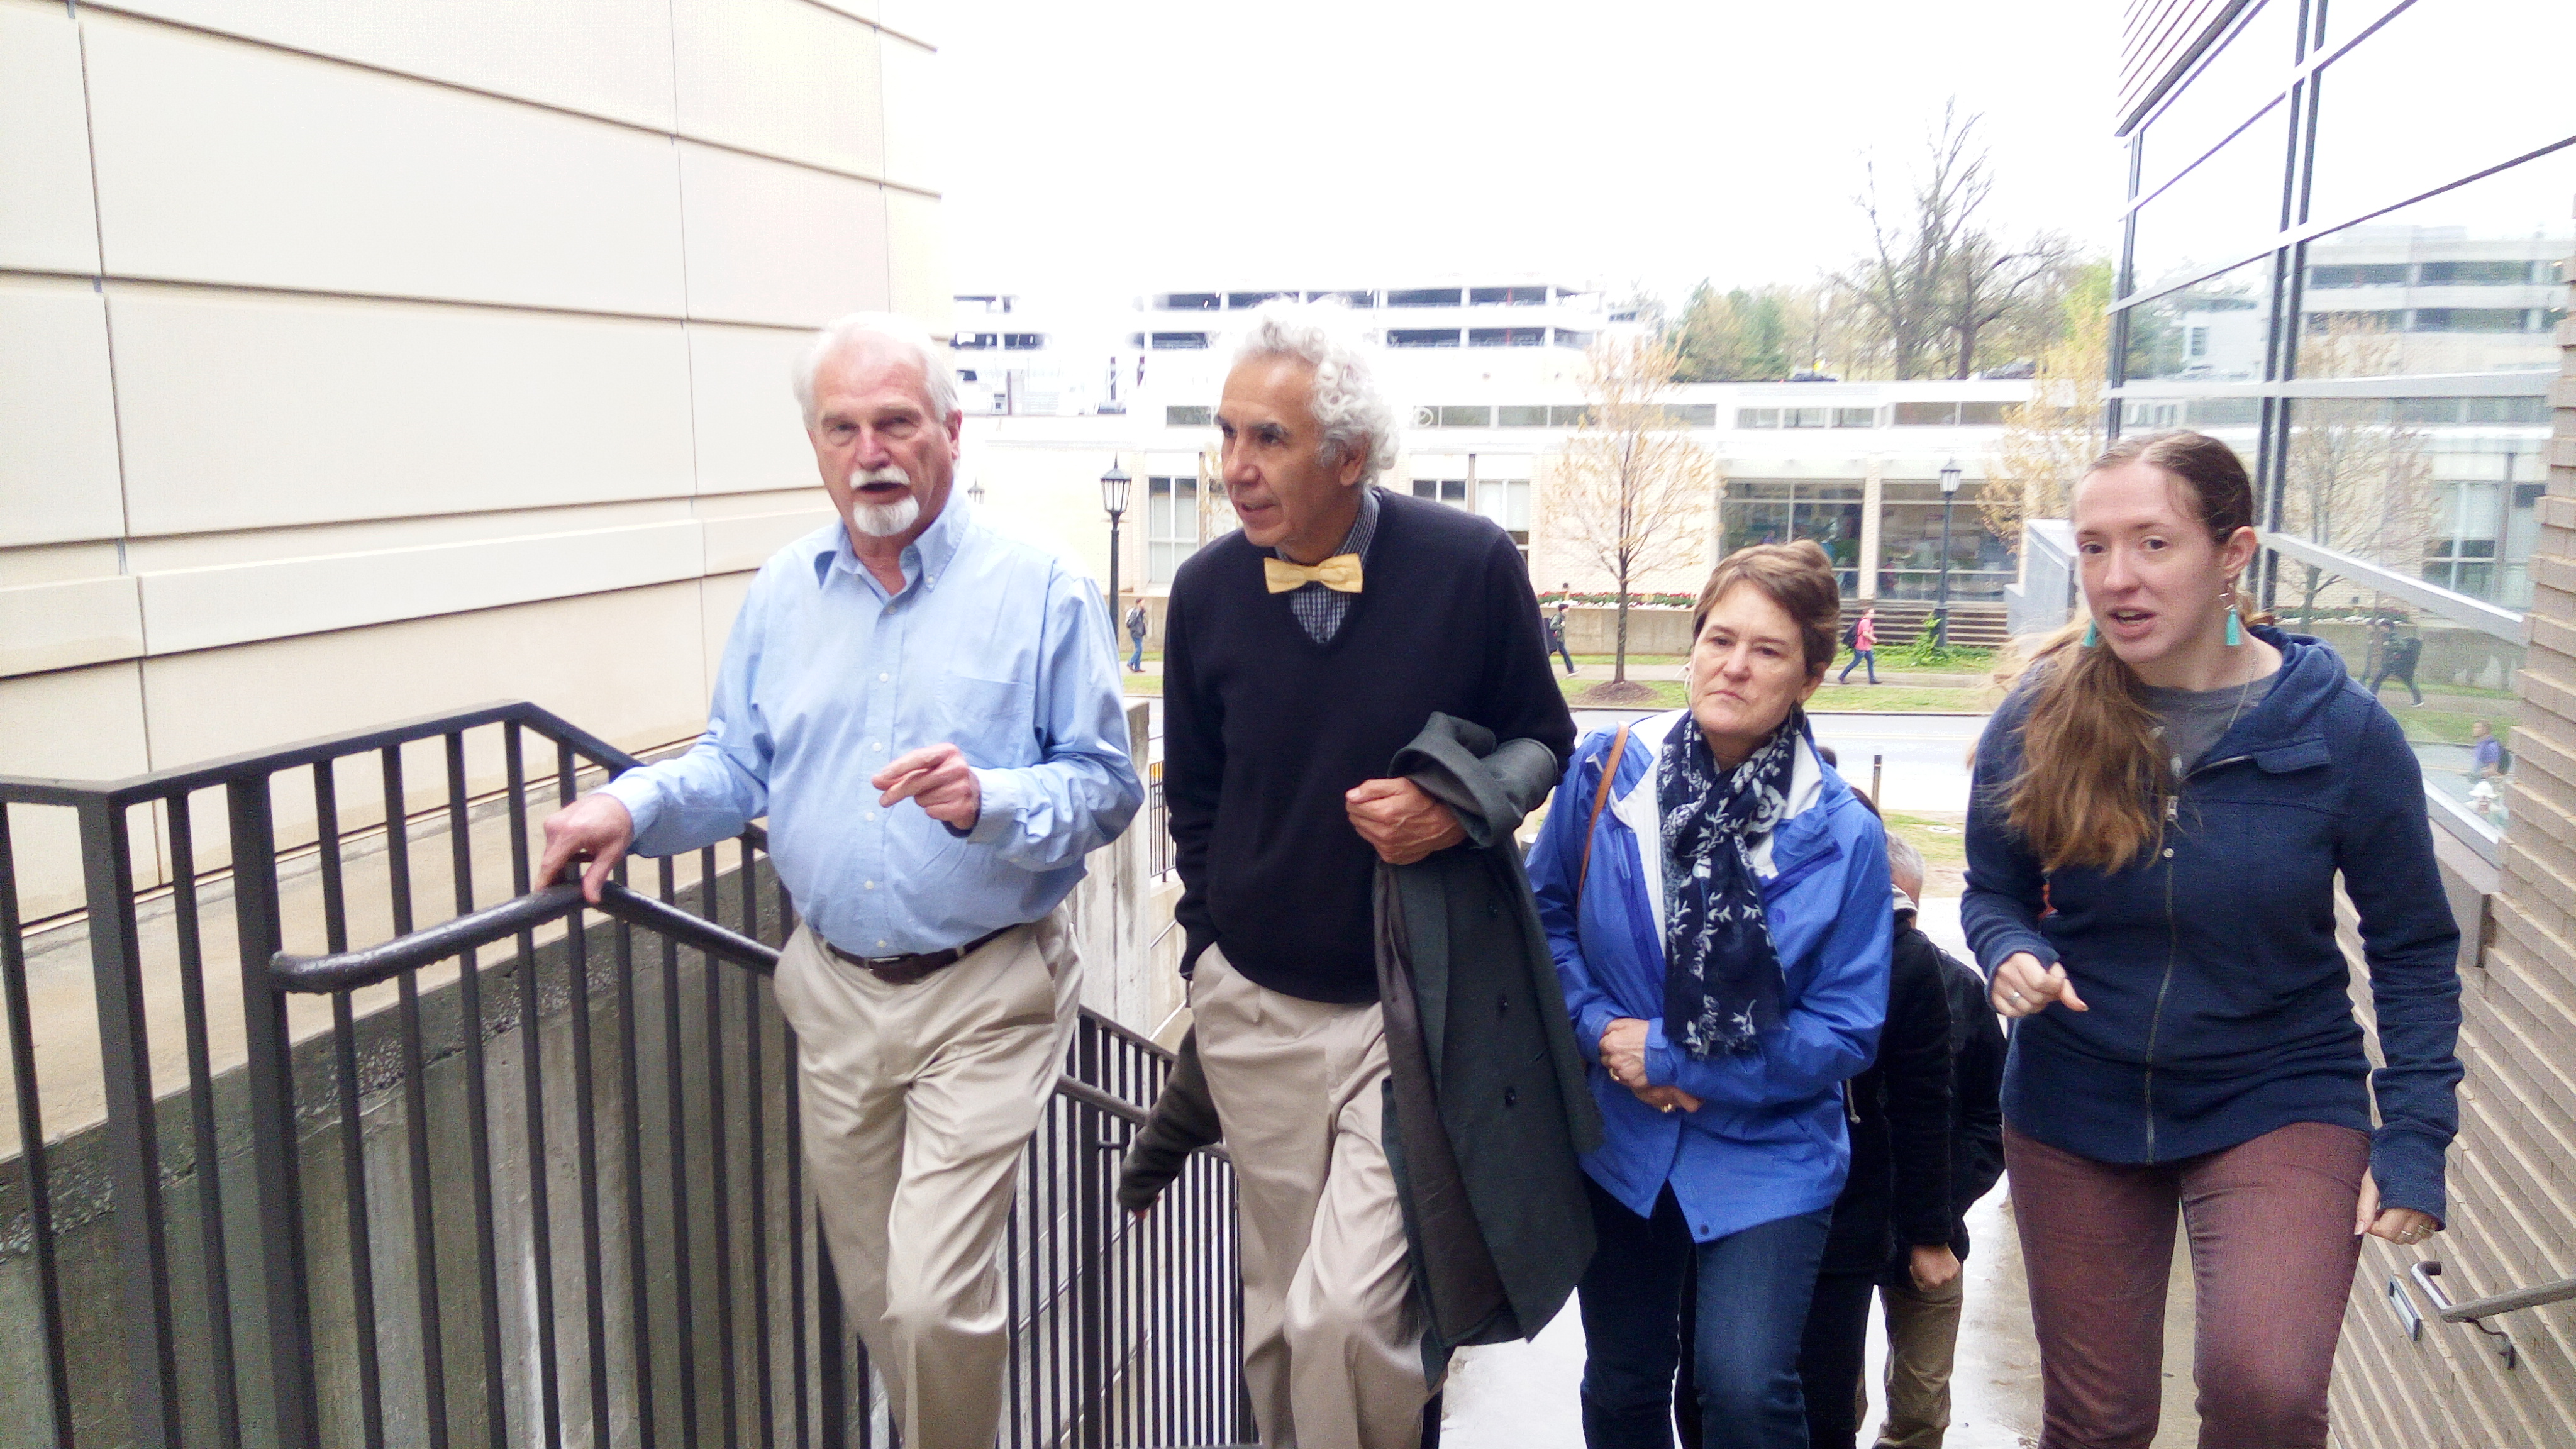 Entering the ARkansas Center for Sopace and Planetary Sciences. From Left Larry Roe, Director, Prof. Dr. Gustavo Zubieta-Calleja, Cindy Youngblood and Caitlin Ahrens pHd Student.